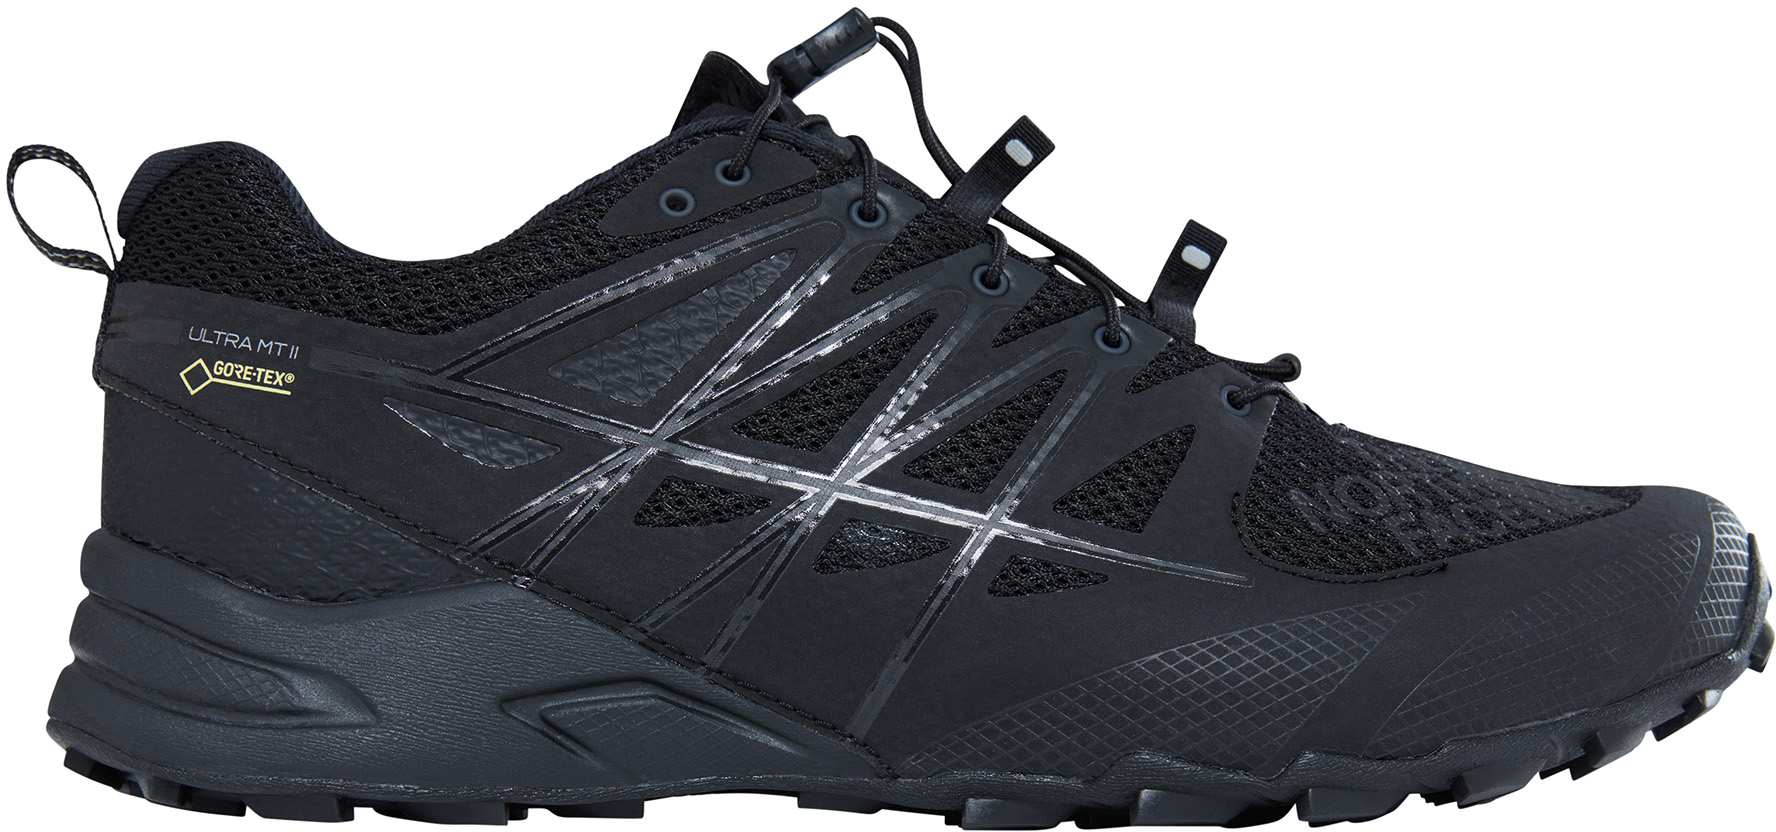 The North Face Ultra Mt II GTX Shoes 8d08e01dceb